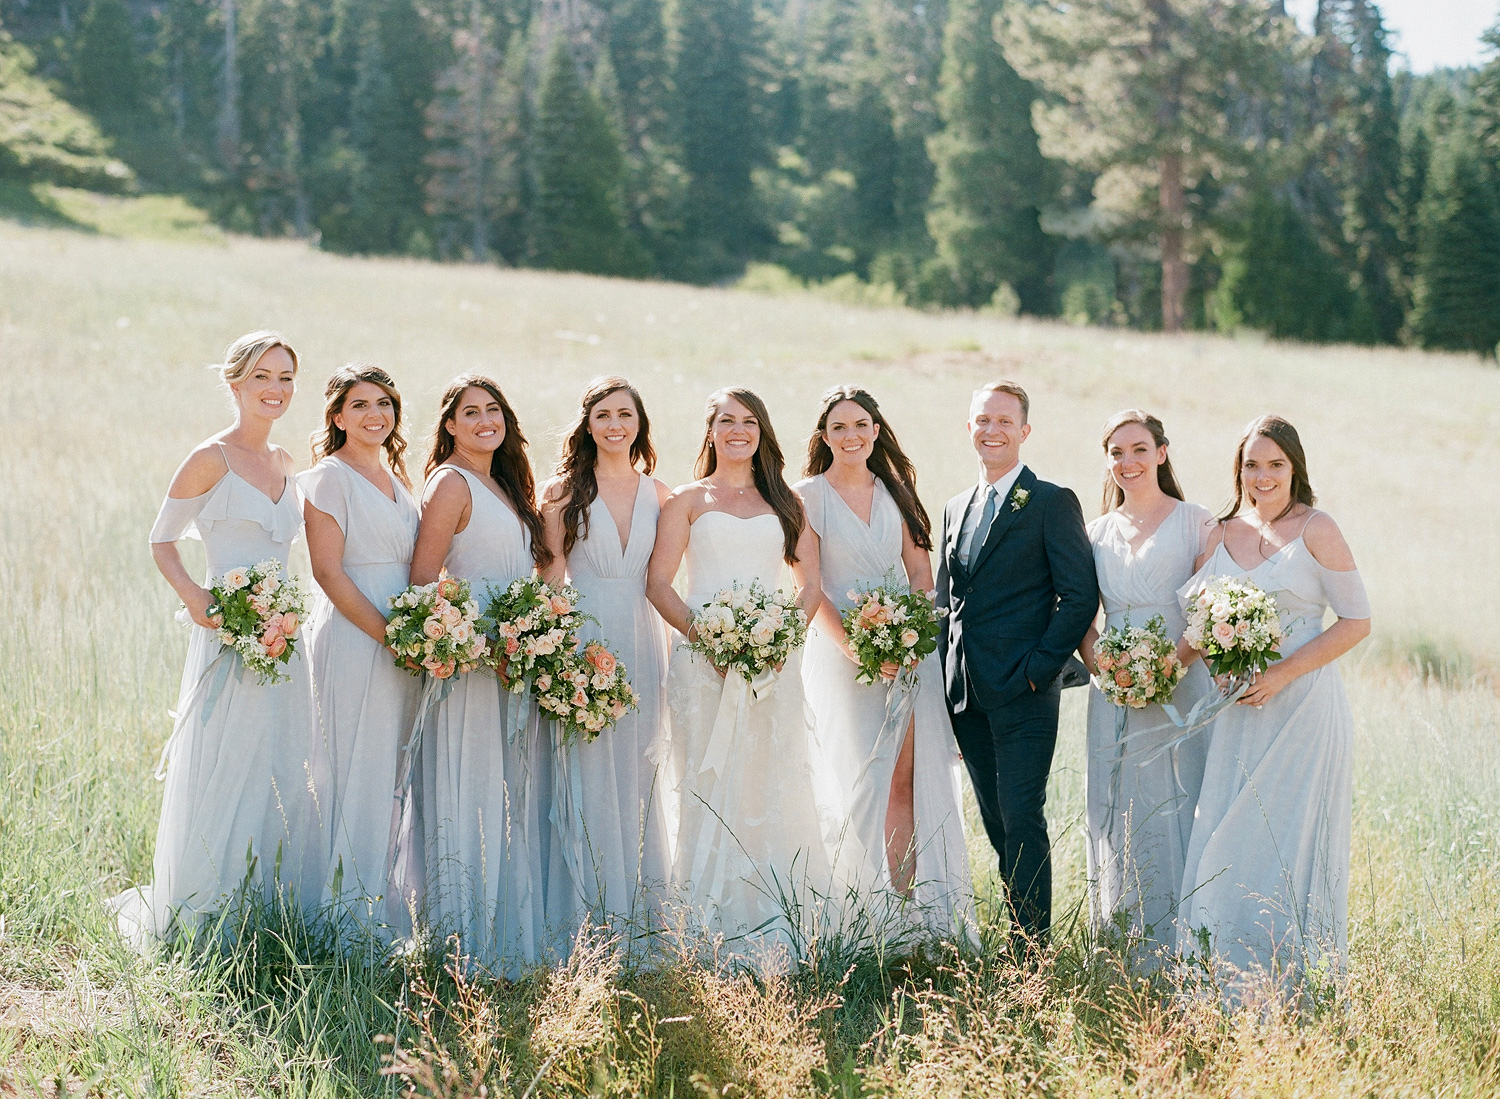 Natalie and Grant wedding bridesmaids and man of honor in blue